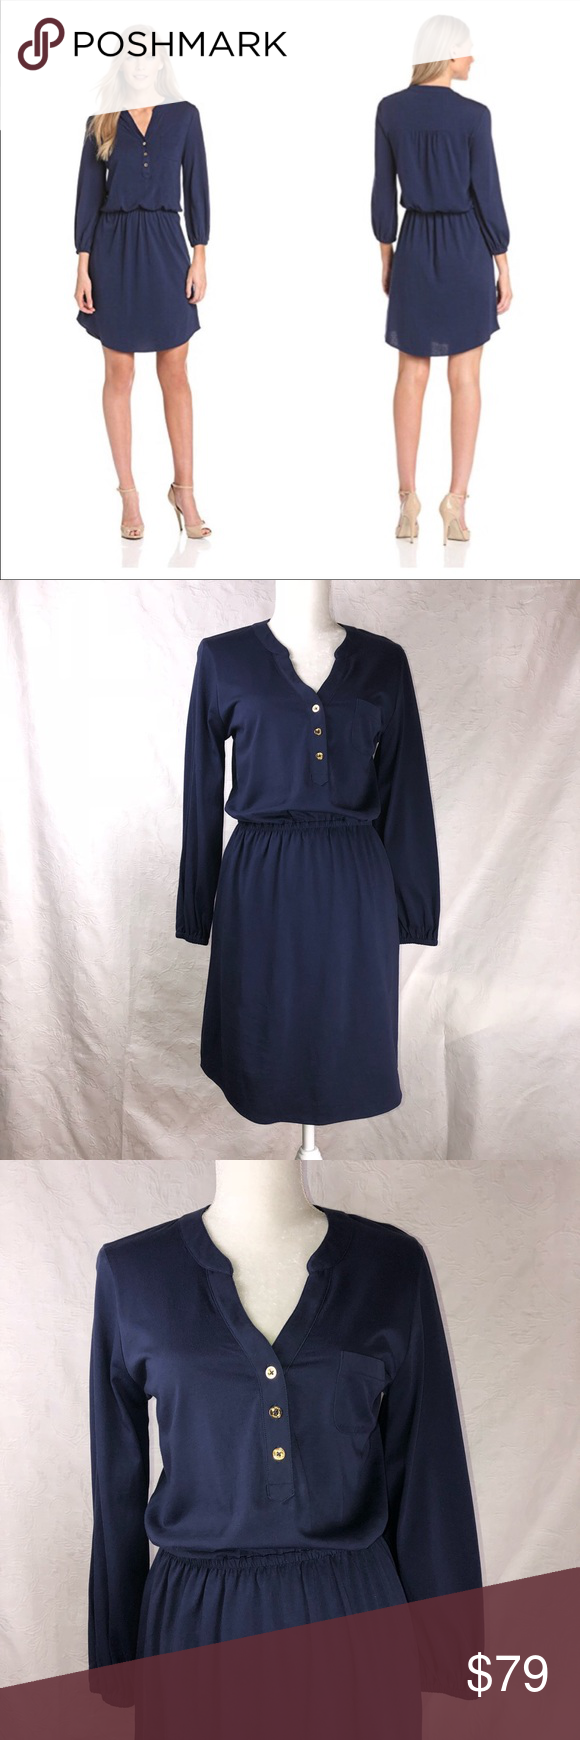 Nwt lilly pulitzer beckett dress m new navy blue with gold buttons